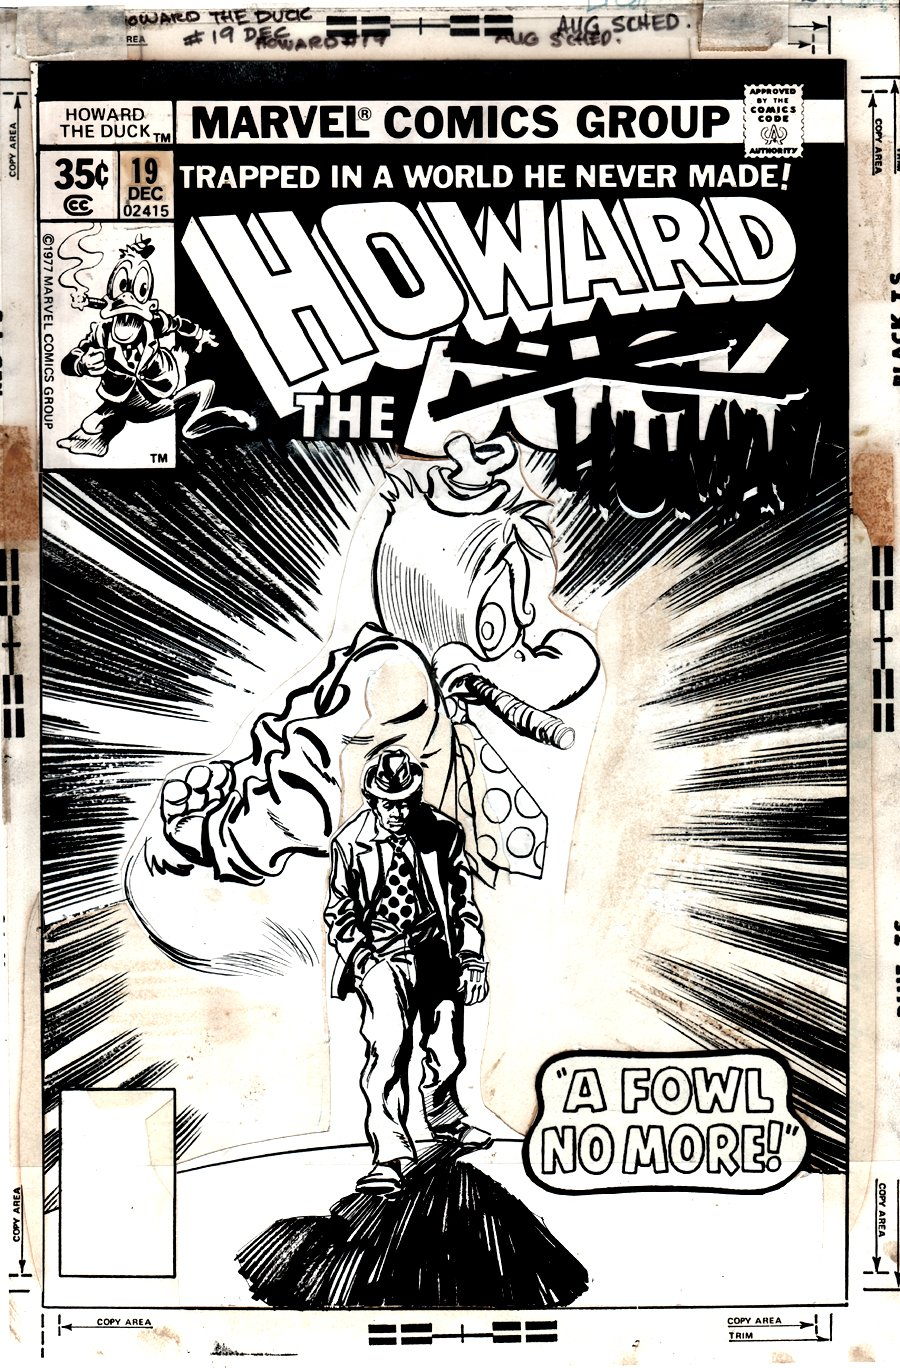 Howard the Duck #19 Cover (1977)